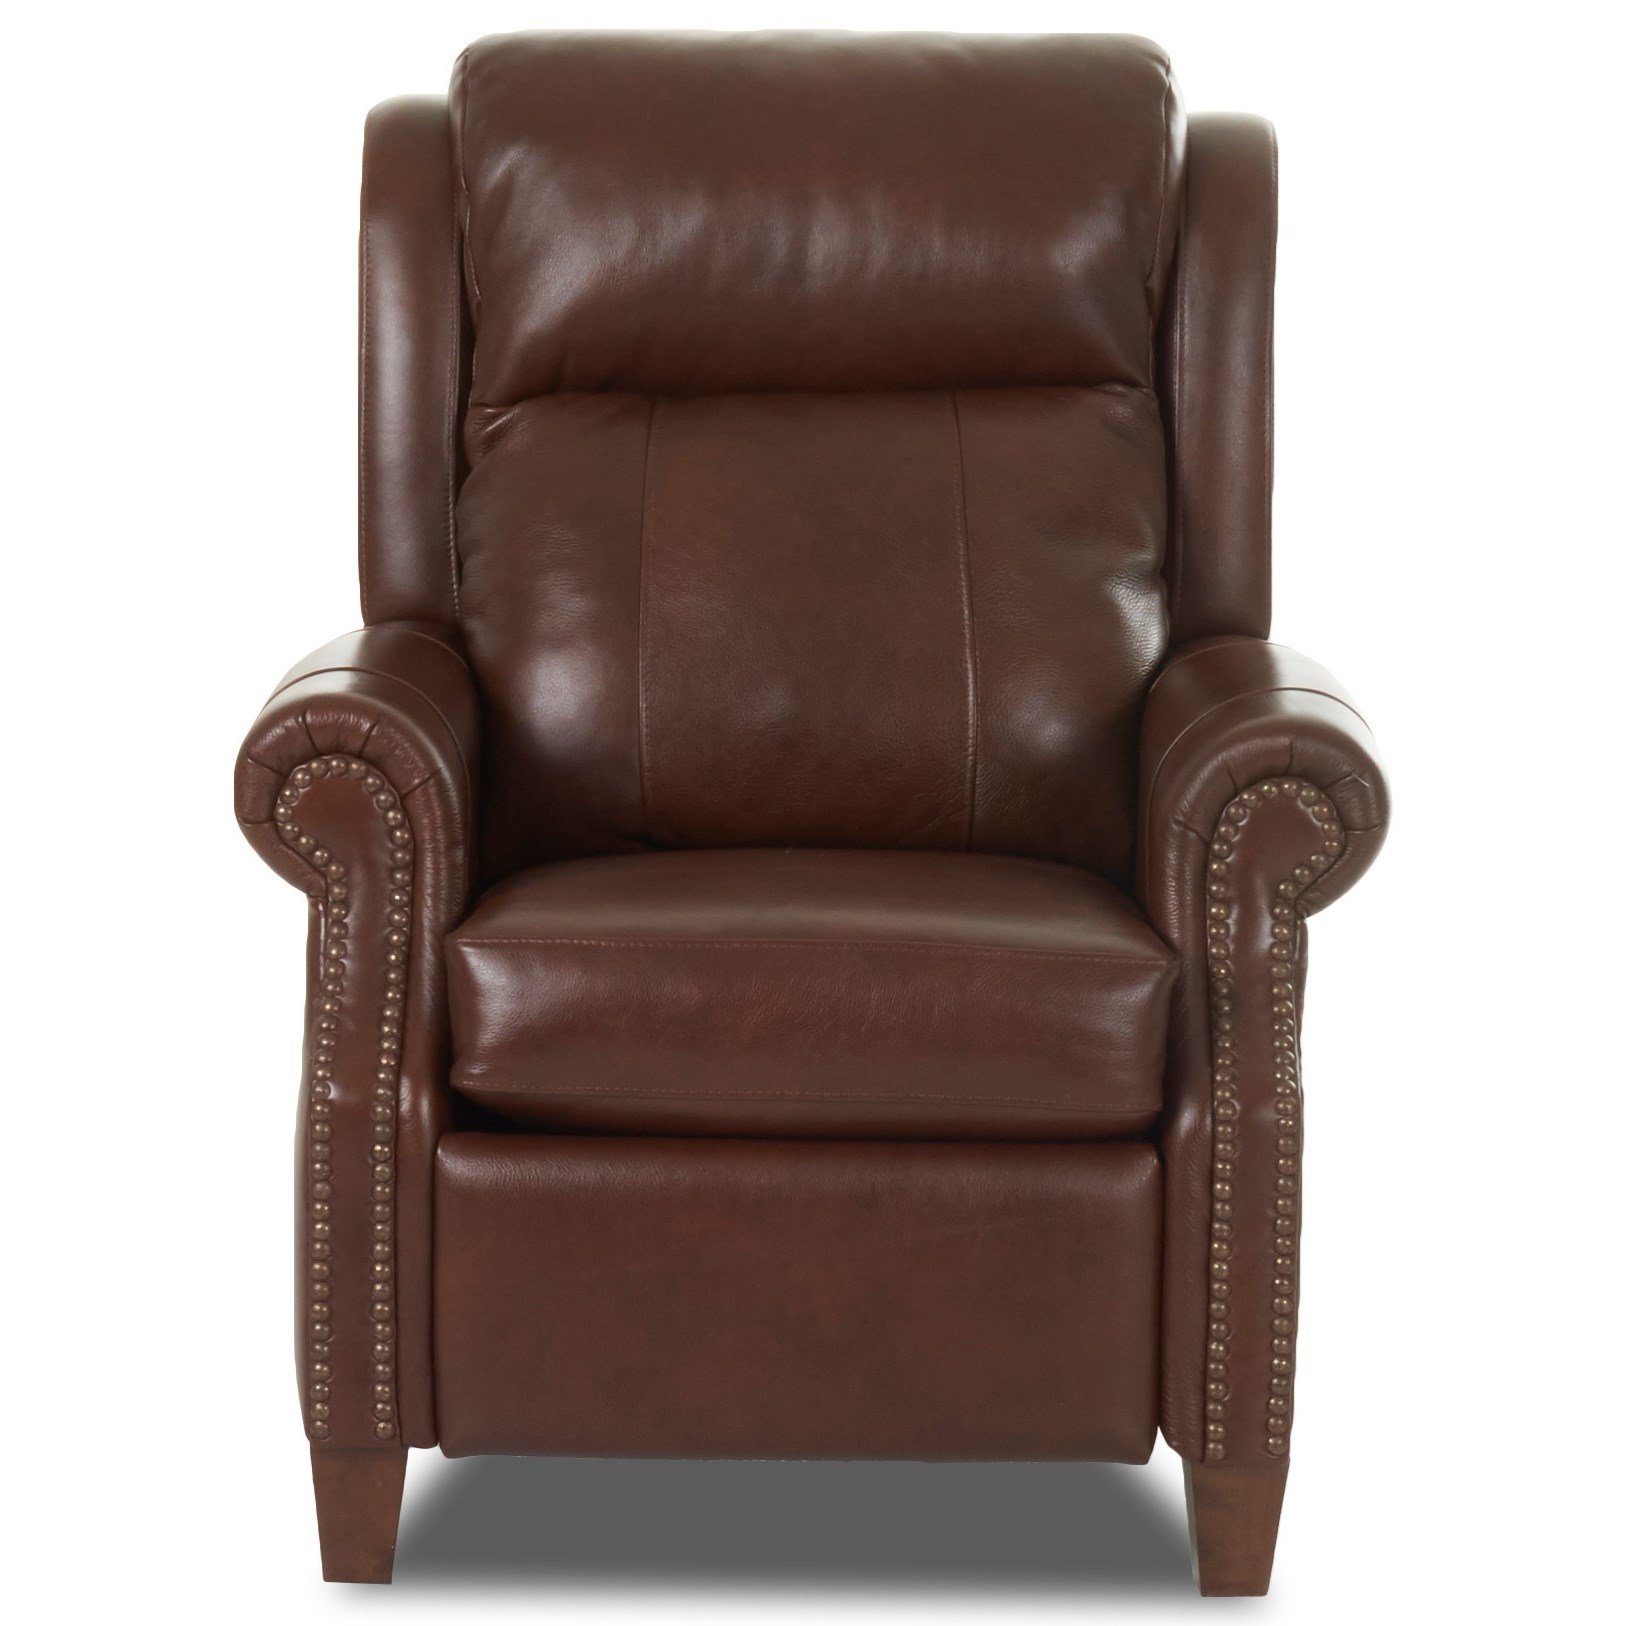 Traditional Power High Leg Recliner with Nailheads